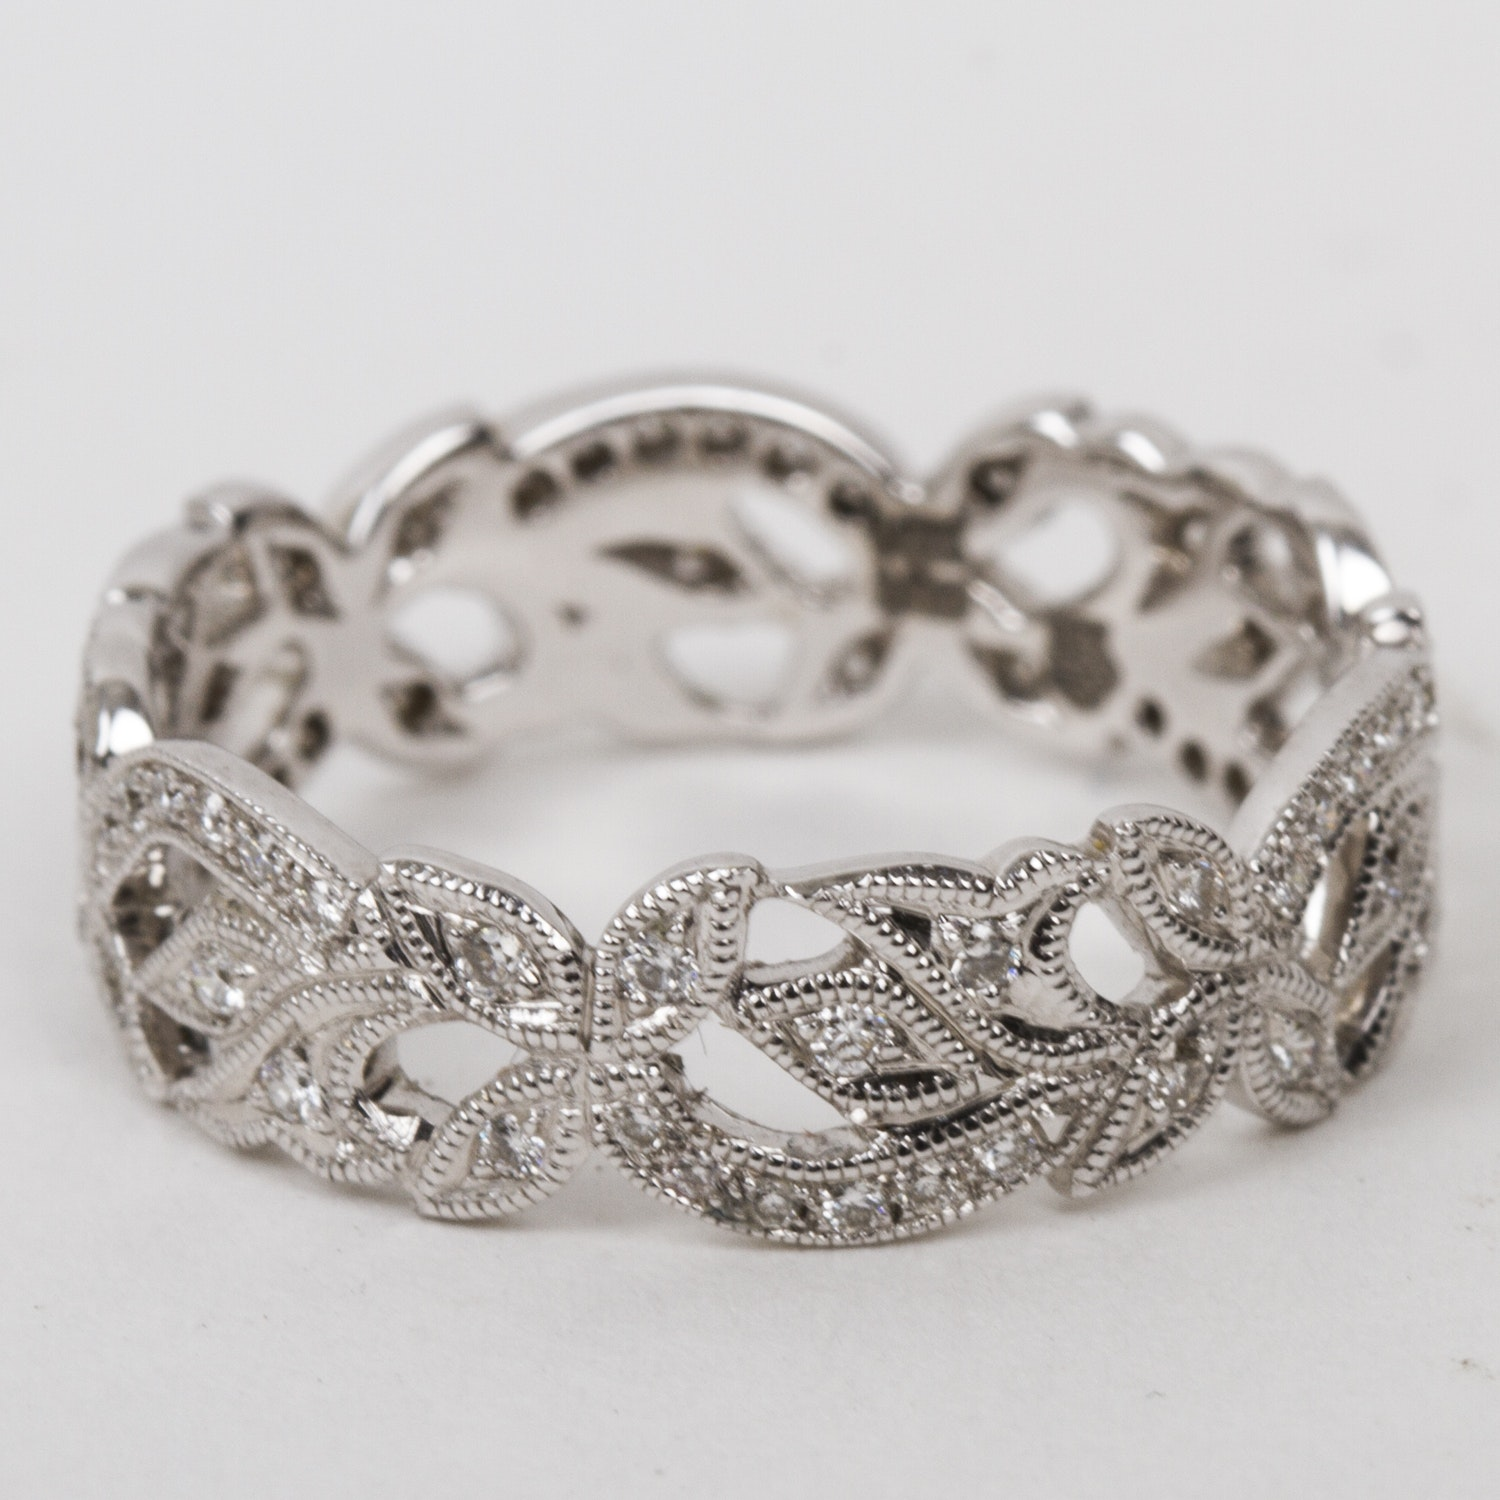 Barry Kieselstein-Cord 18K White Gold and Diamond Openwork Band